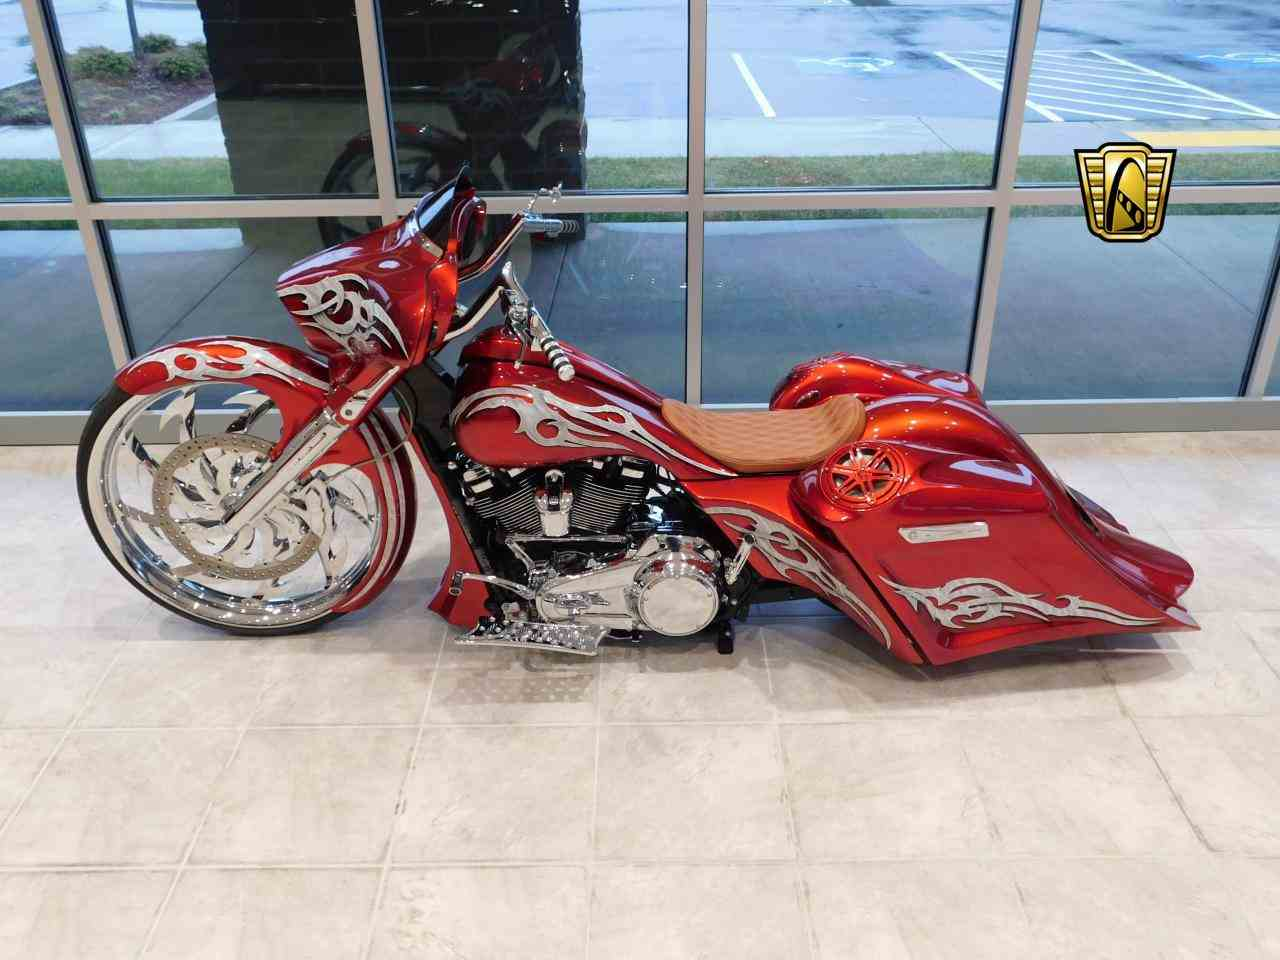 Large Picture of '17 Motorcycle located in Alpharetta Georgia - $98,000.00 - MOAJ